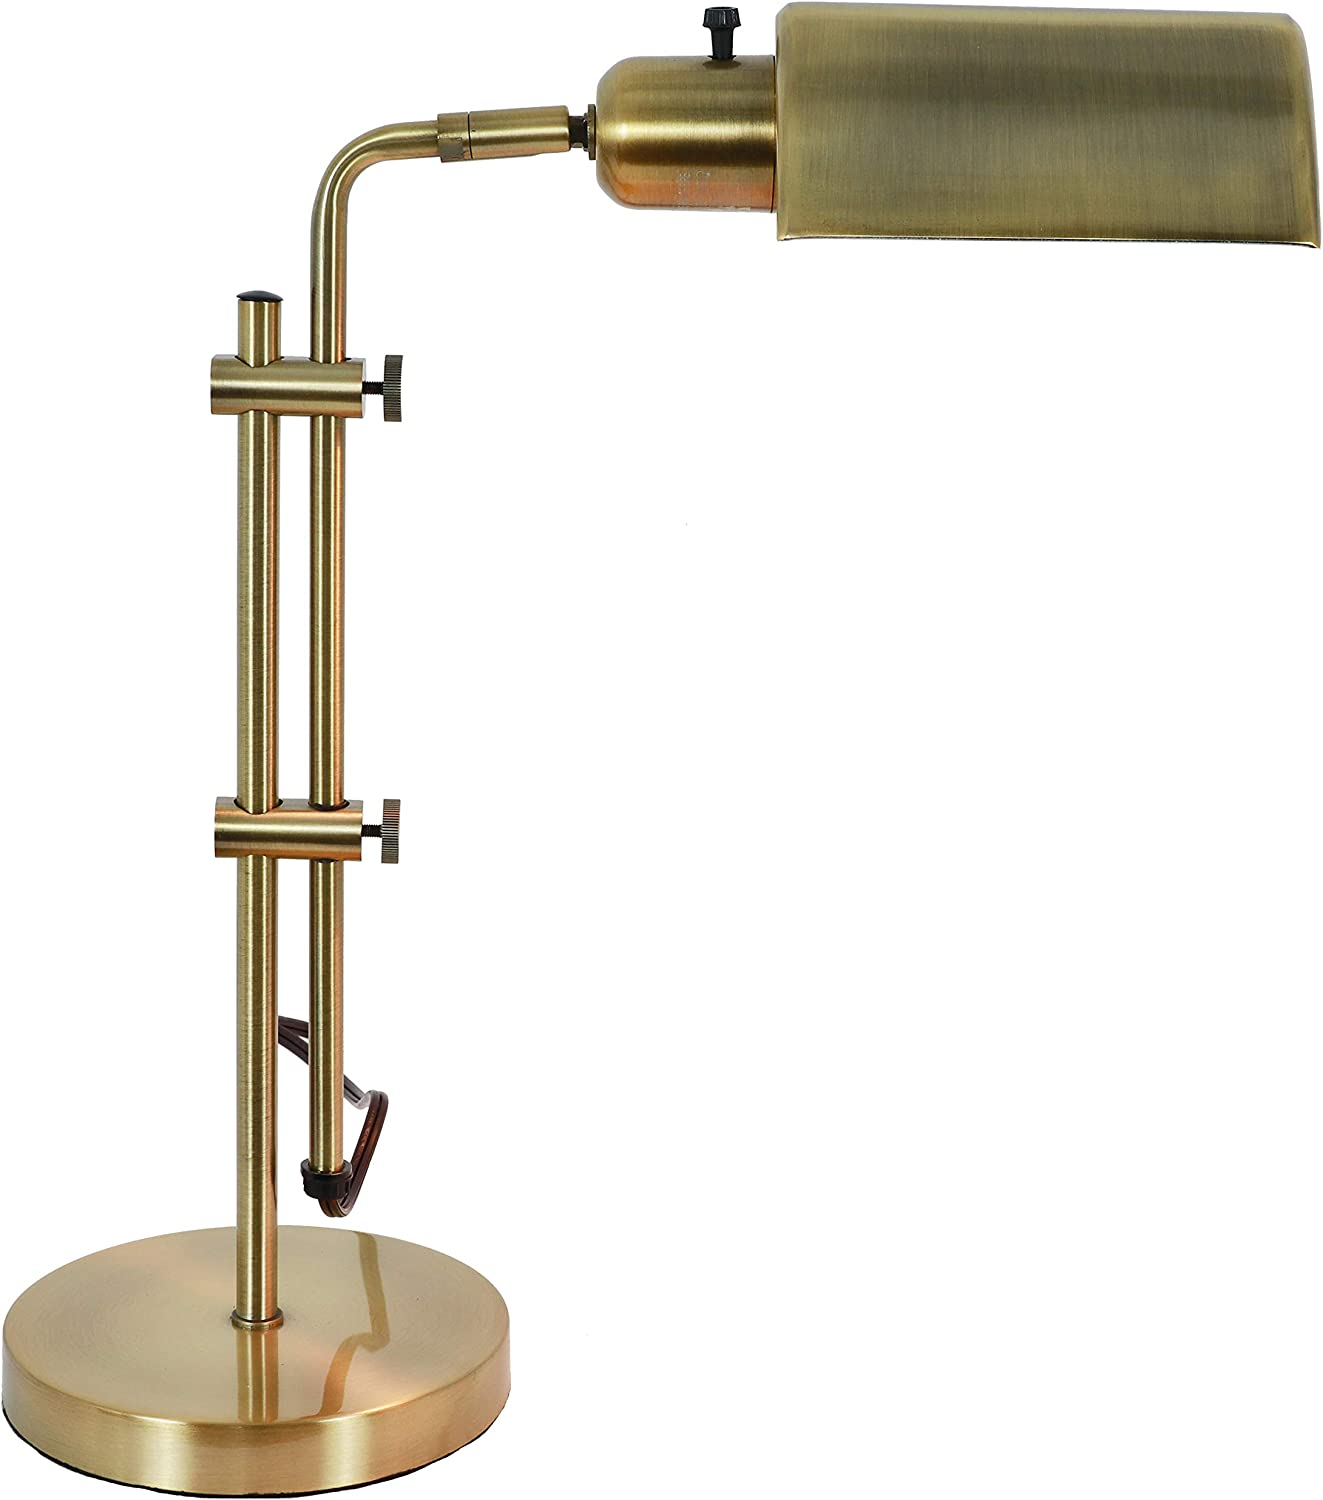 Decor Therapy TL20413 Adjustable Pharmacy Zadar Brass Table Lamp